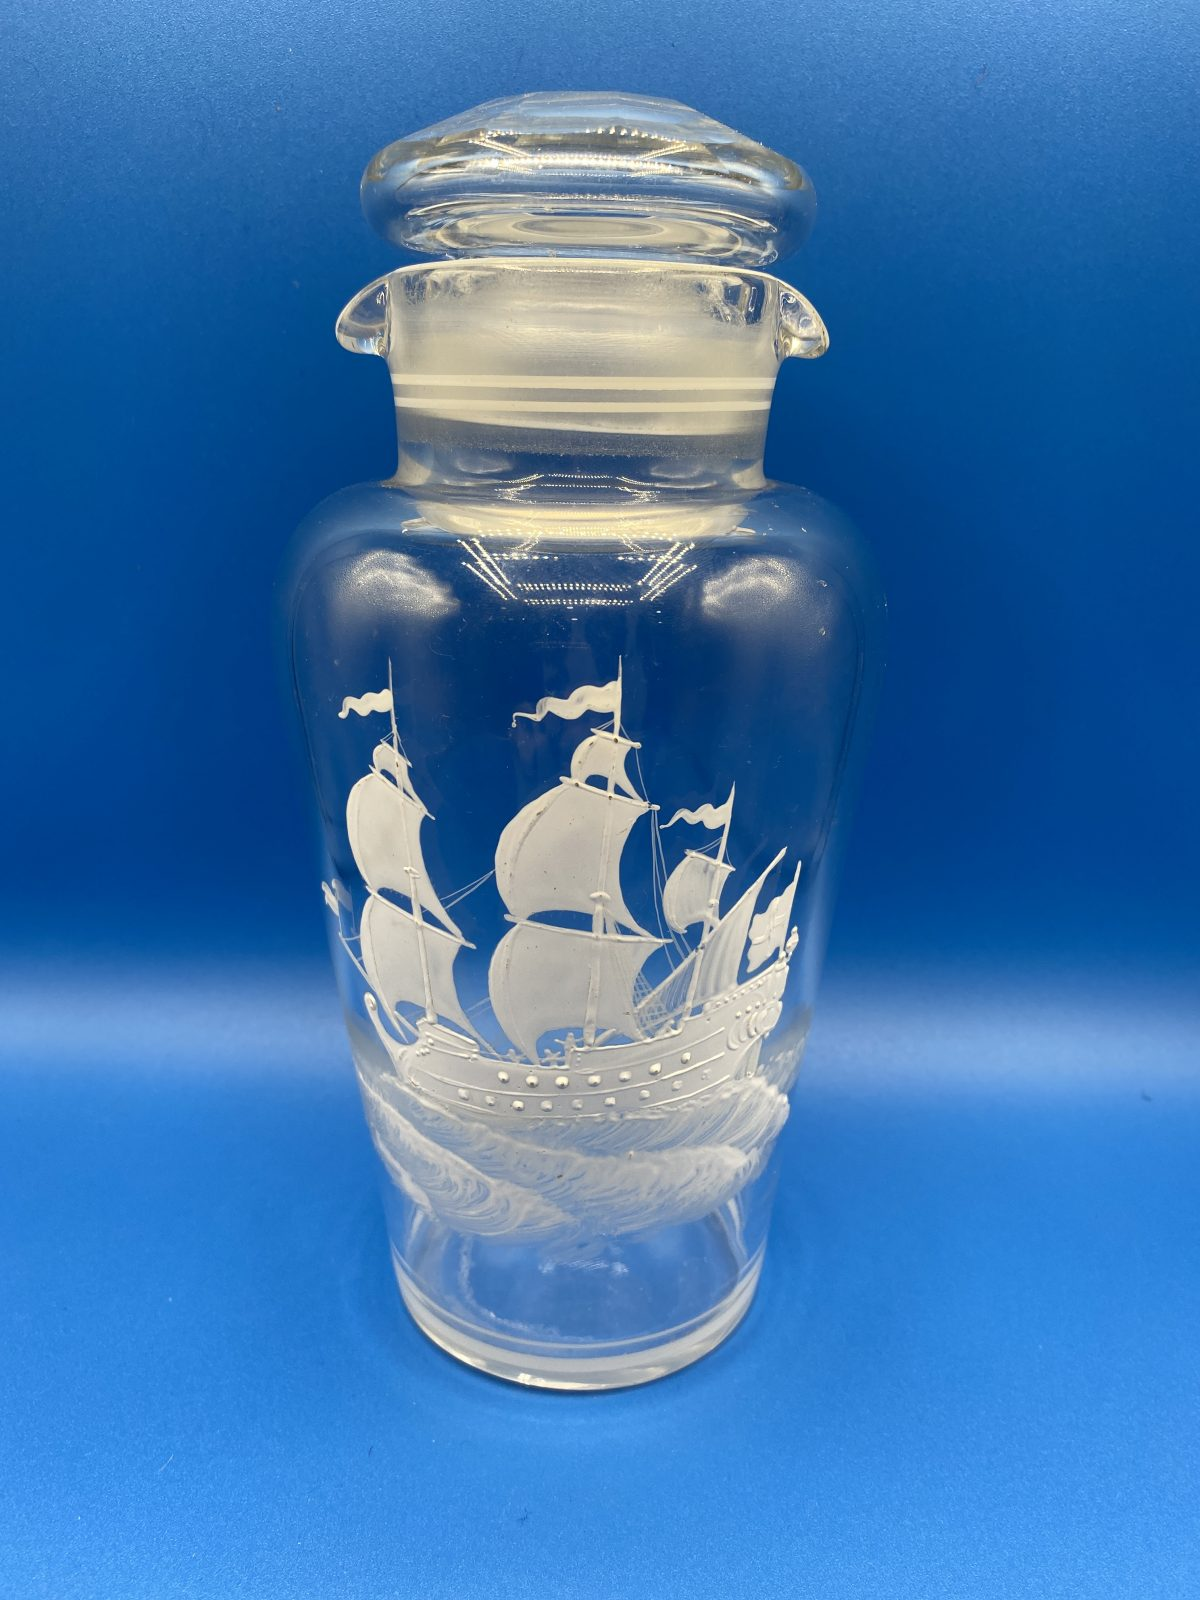 G3 - A Glass Cocktail Shaker with galleon motif.  £42